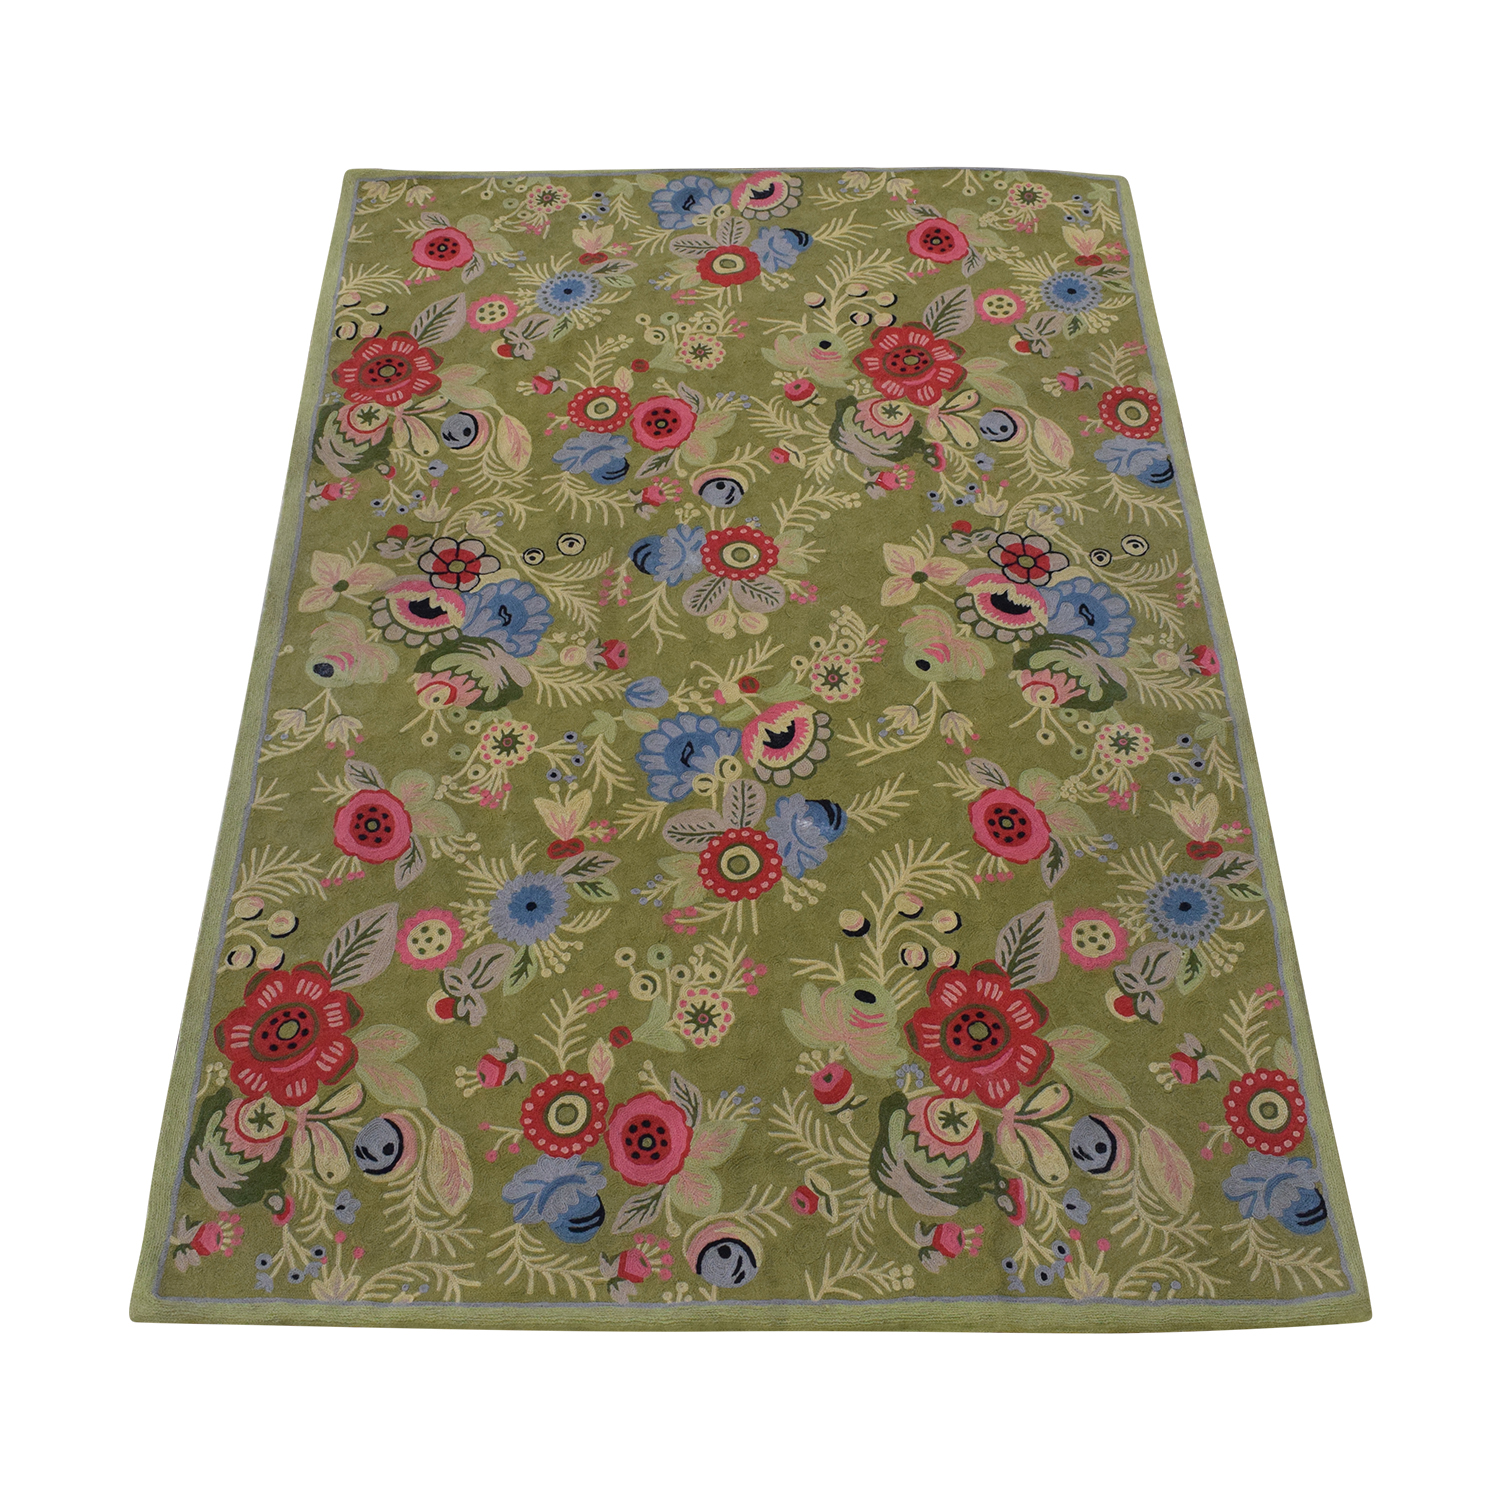 Anthropologie Anthropologie Woven Wool Floral Rug second hand